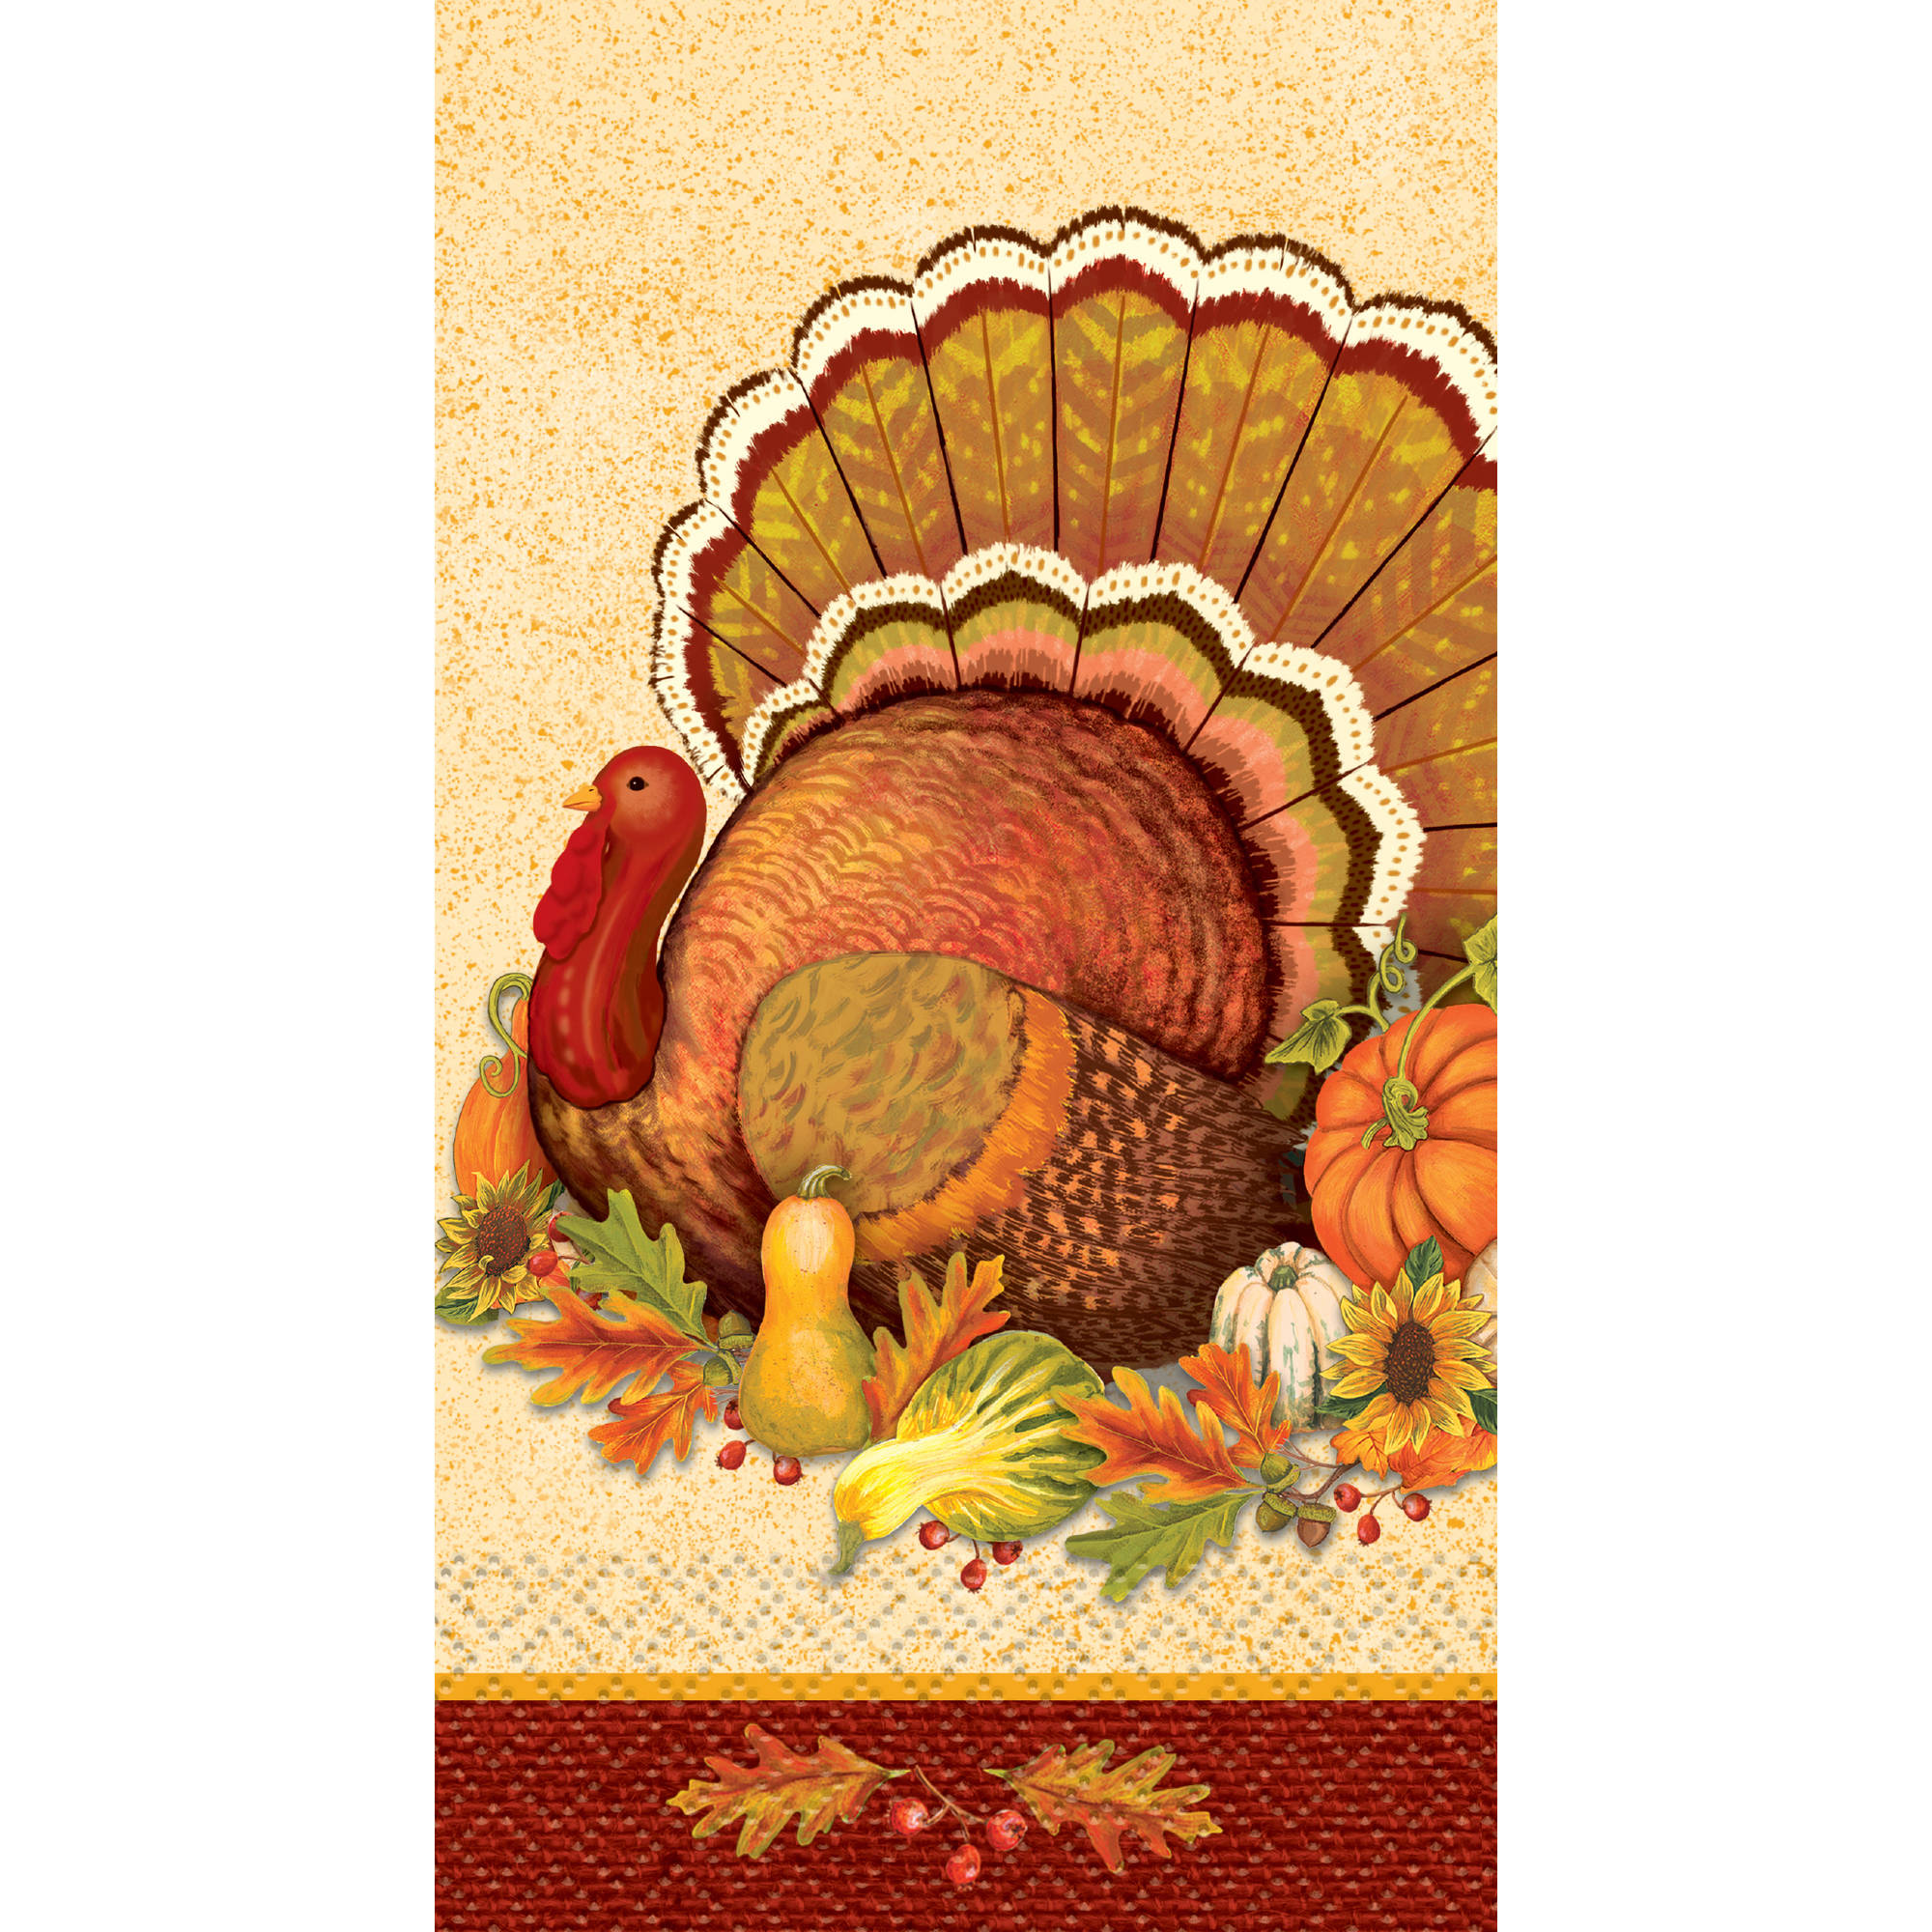 Give Thanks Thanksgiving Paper Guest Napkins, 7.75 x 4.5 in, 16ct